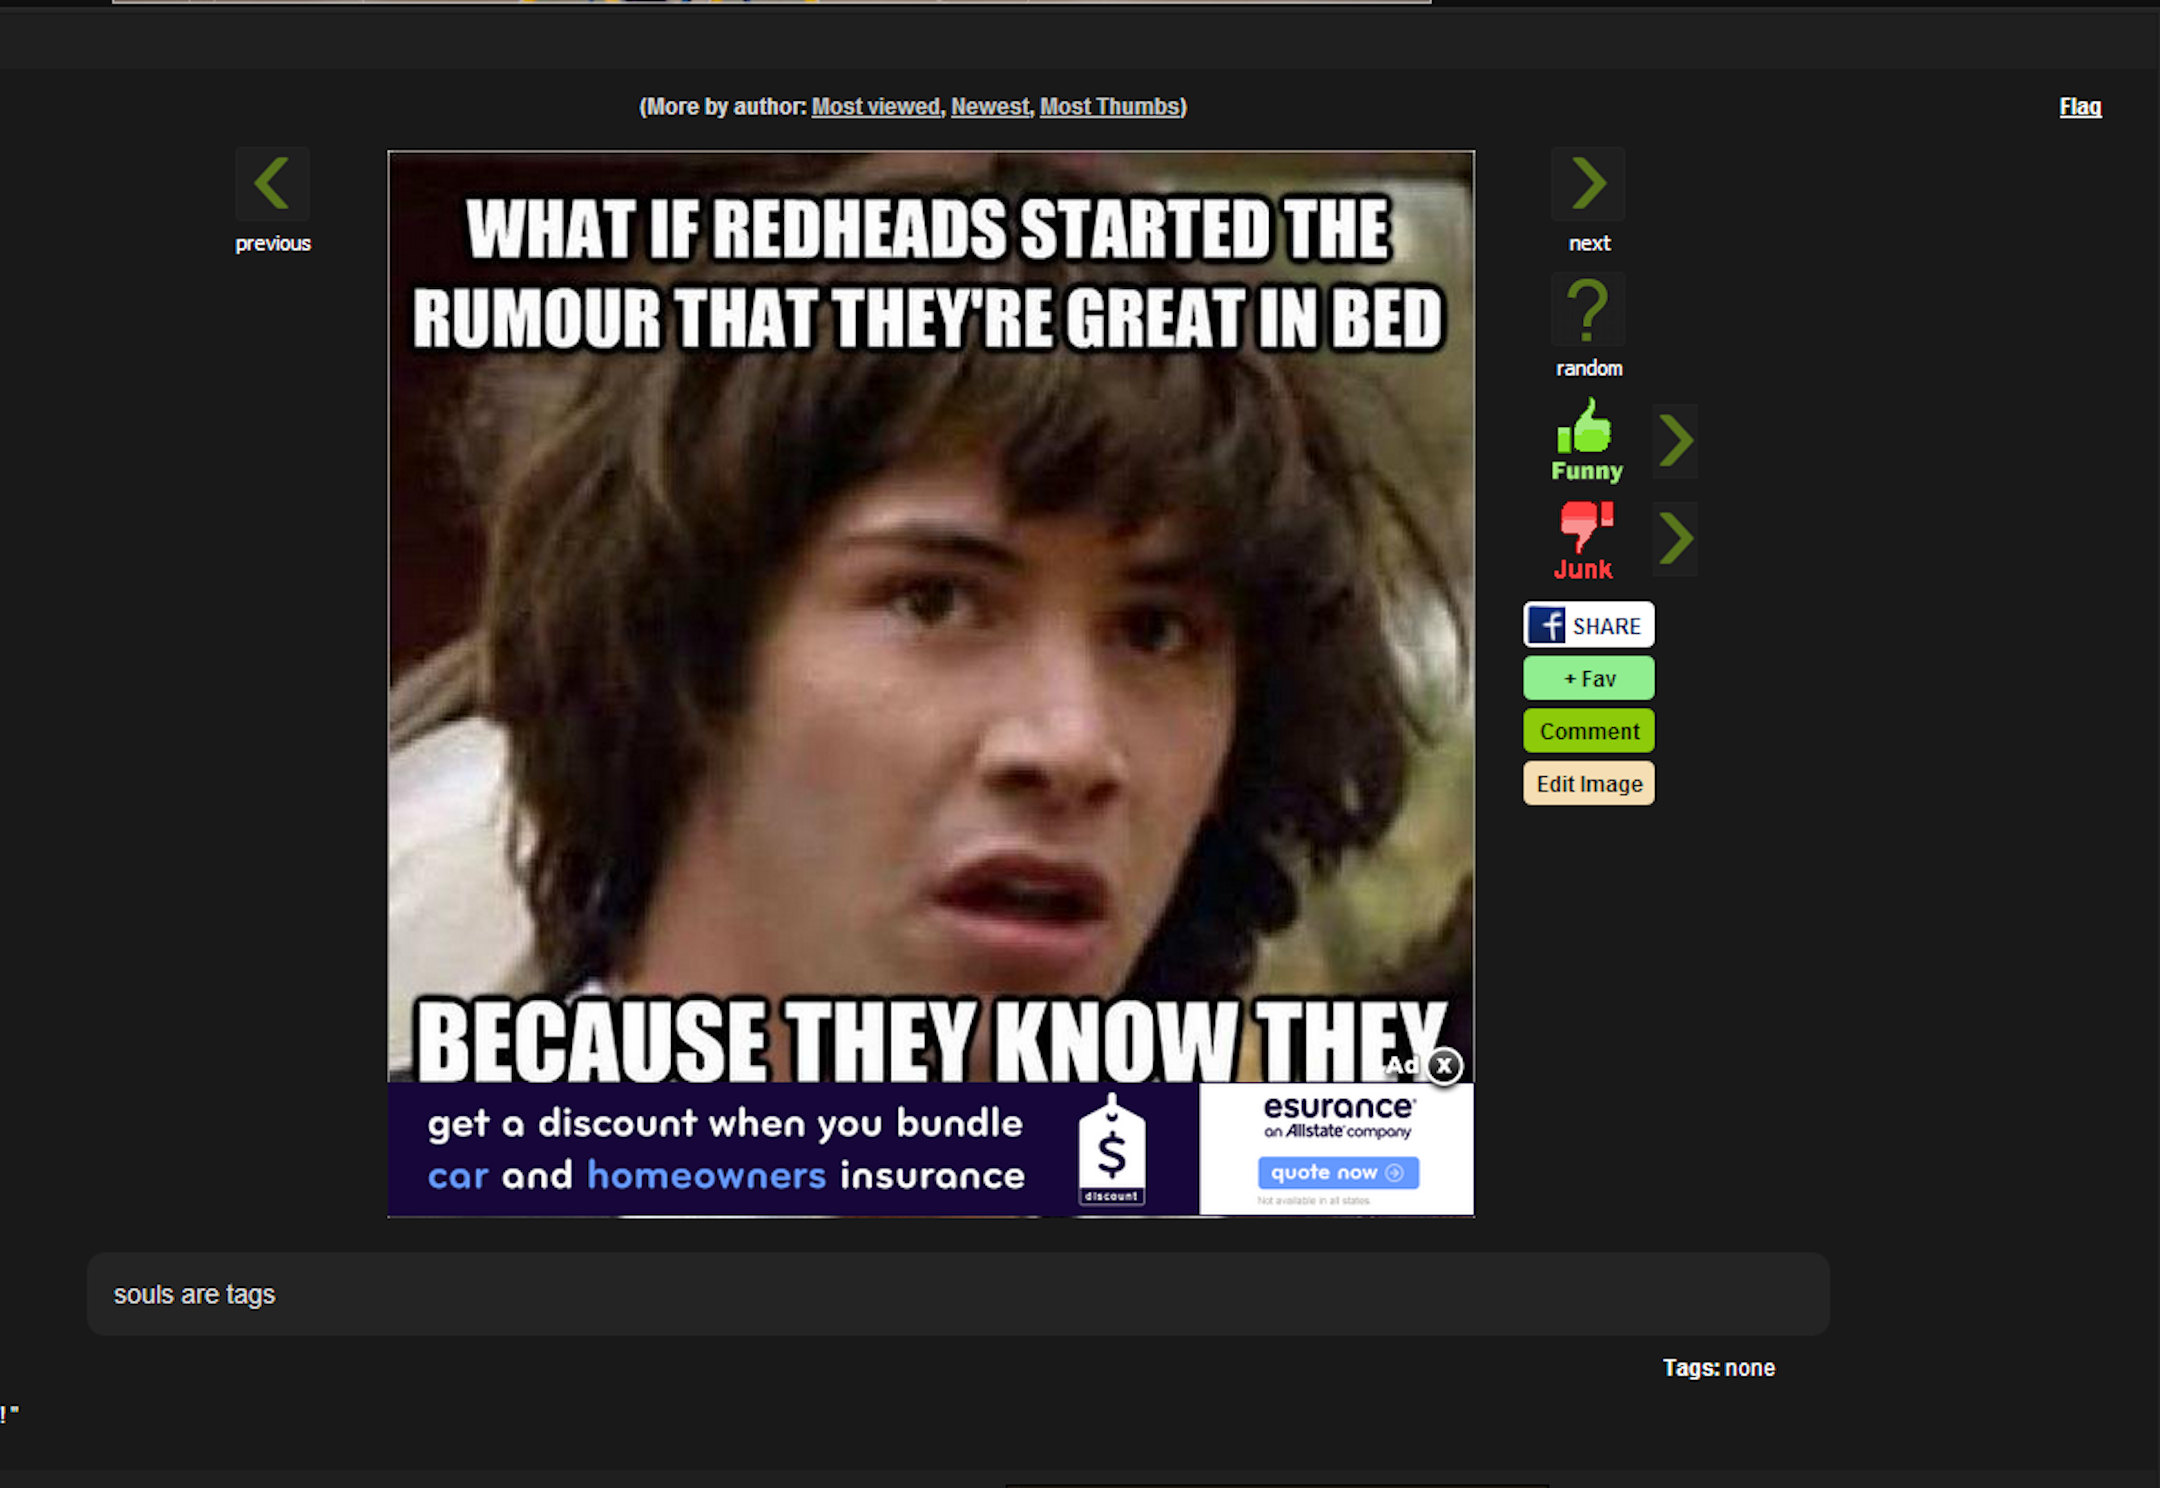 why would anyone use adblock?. .. Content shown in other post. Swell with pride.